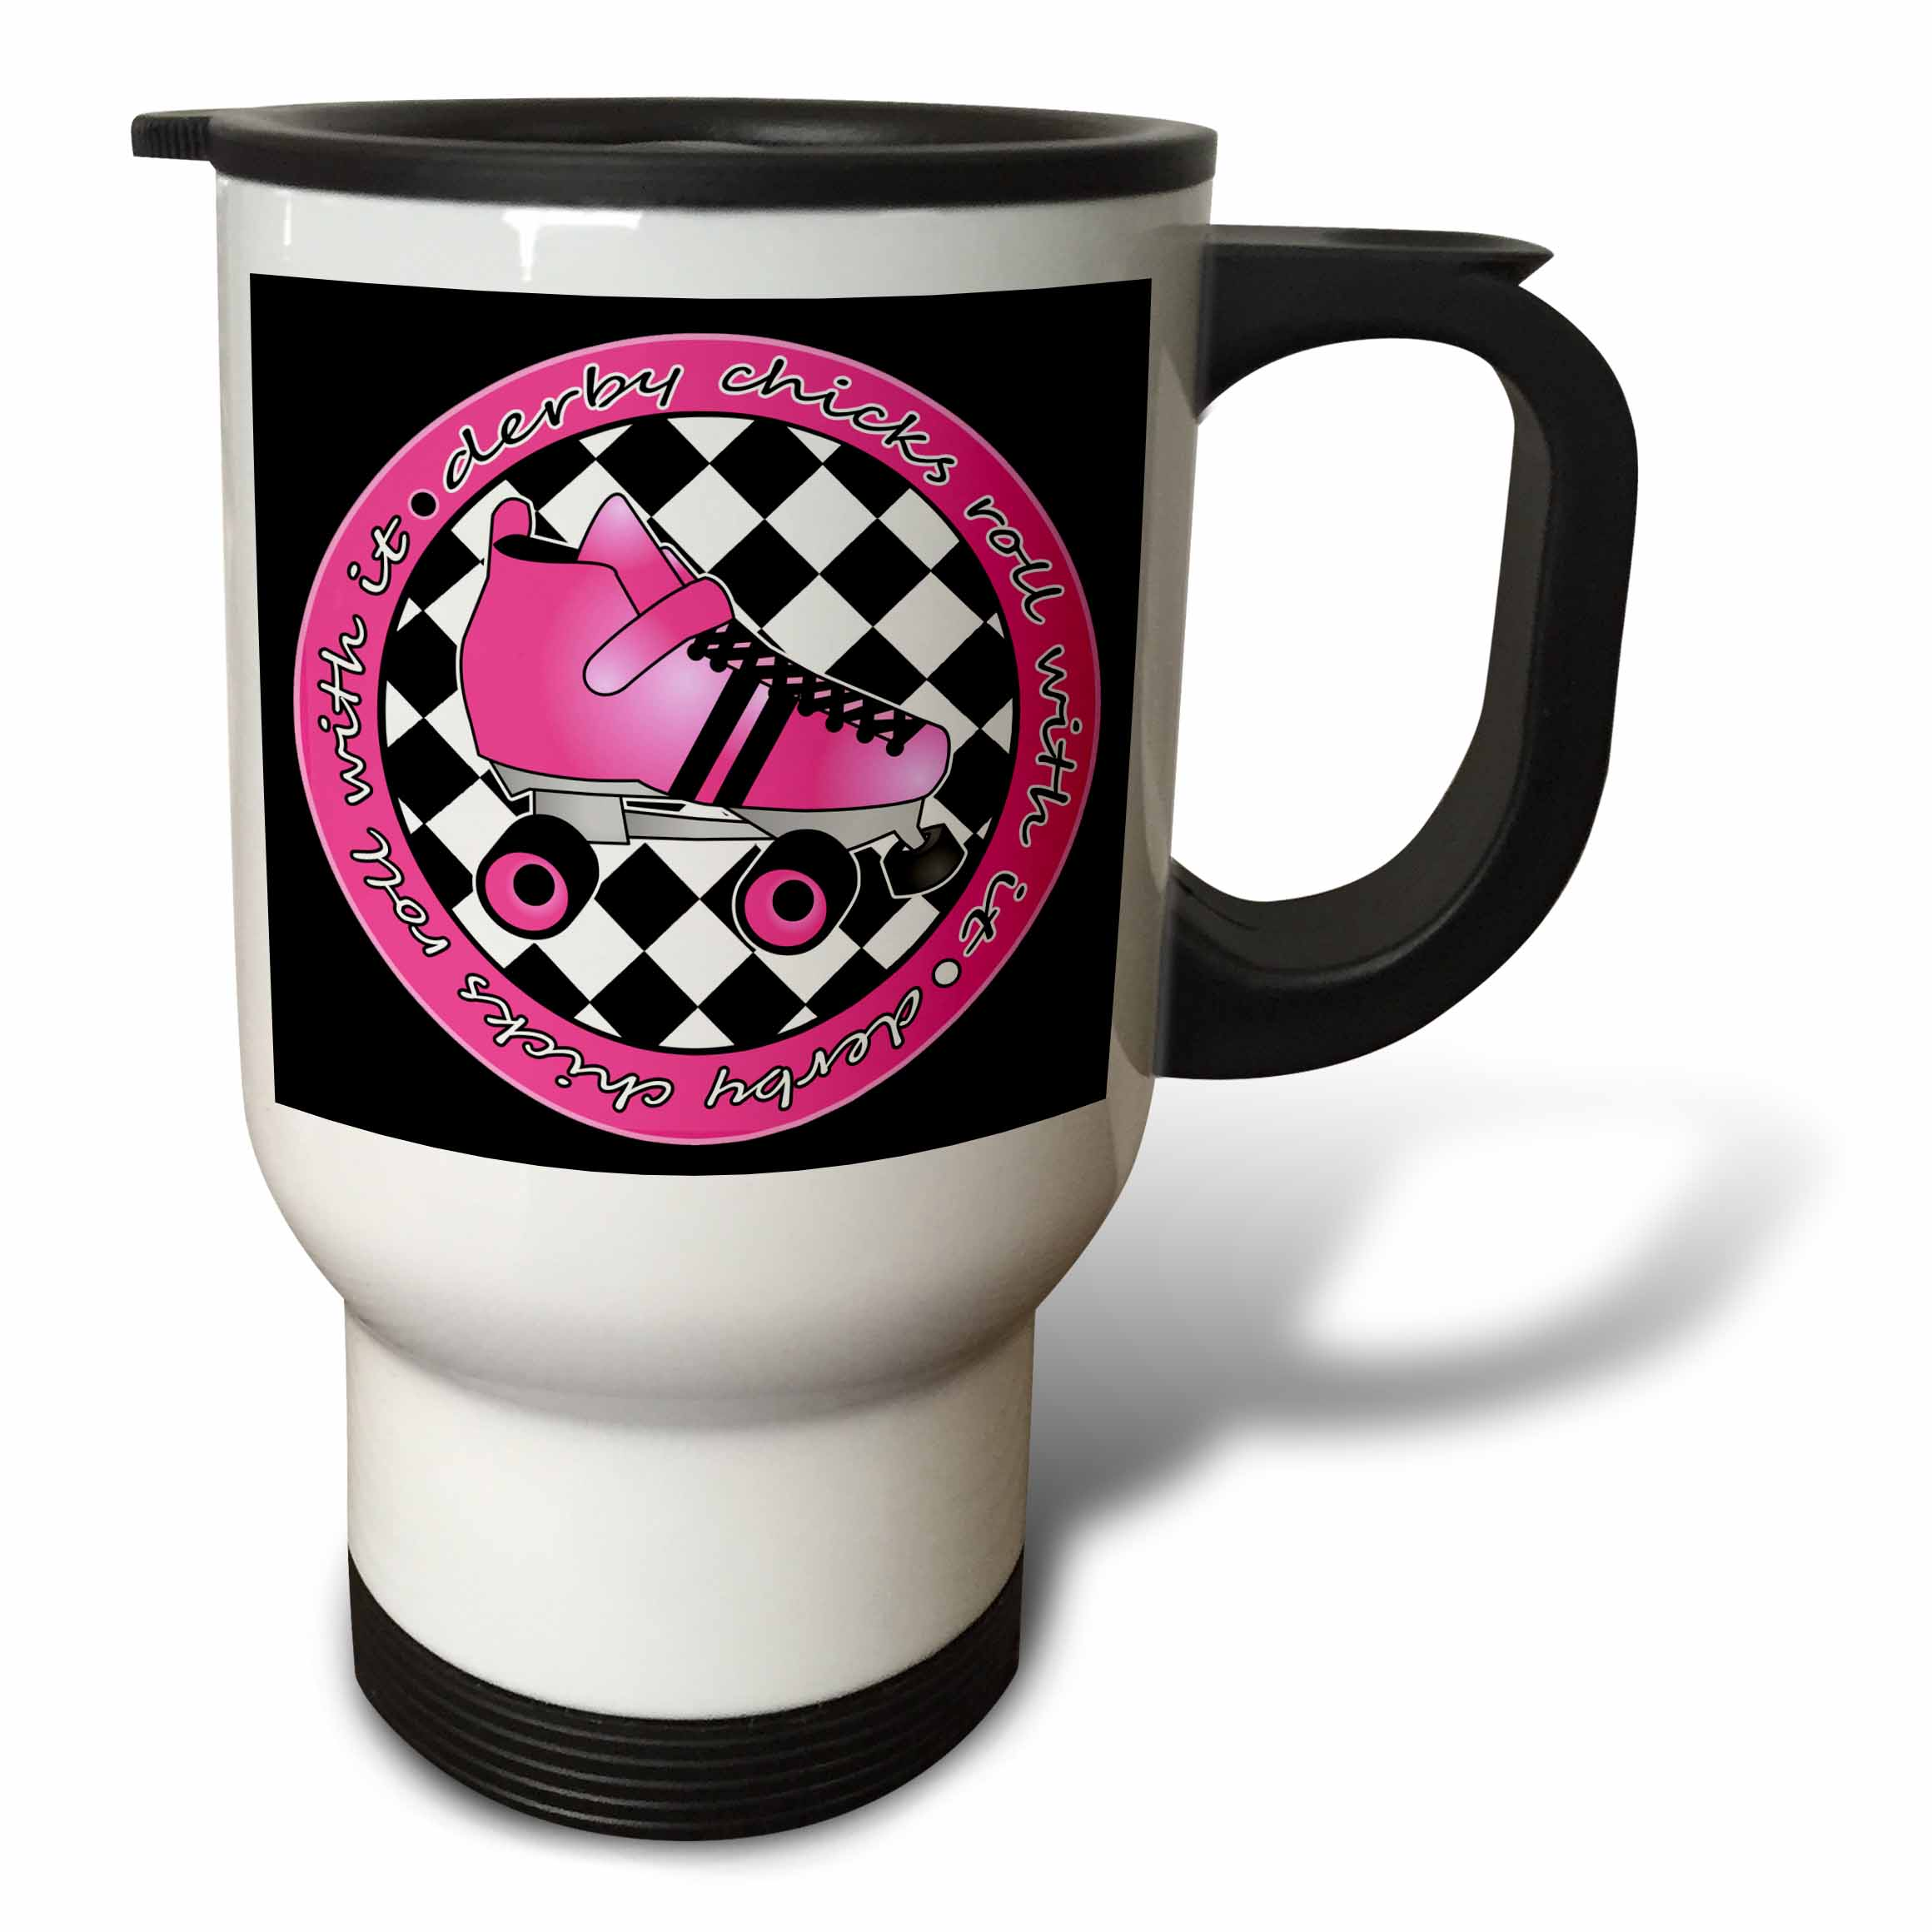 3dRose Derby Chicks Roll With It Hot Pink Roller Skate and Black, Travel Mug, 14oz, Stainless Steel by 3dRose